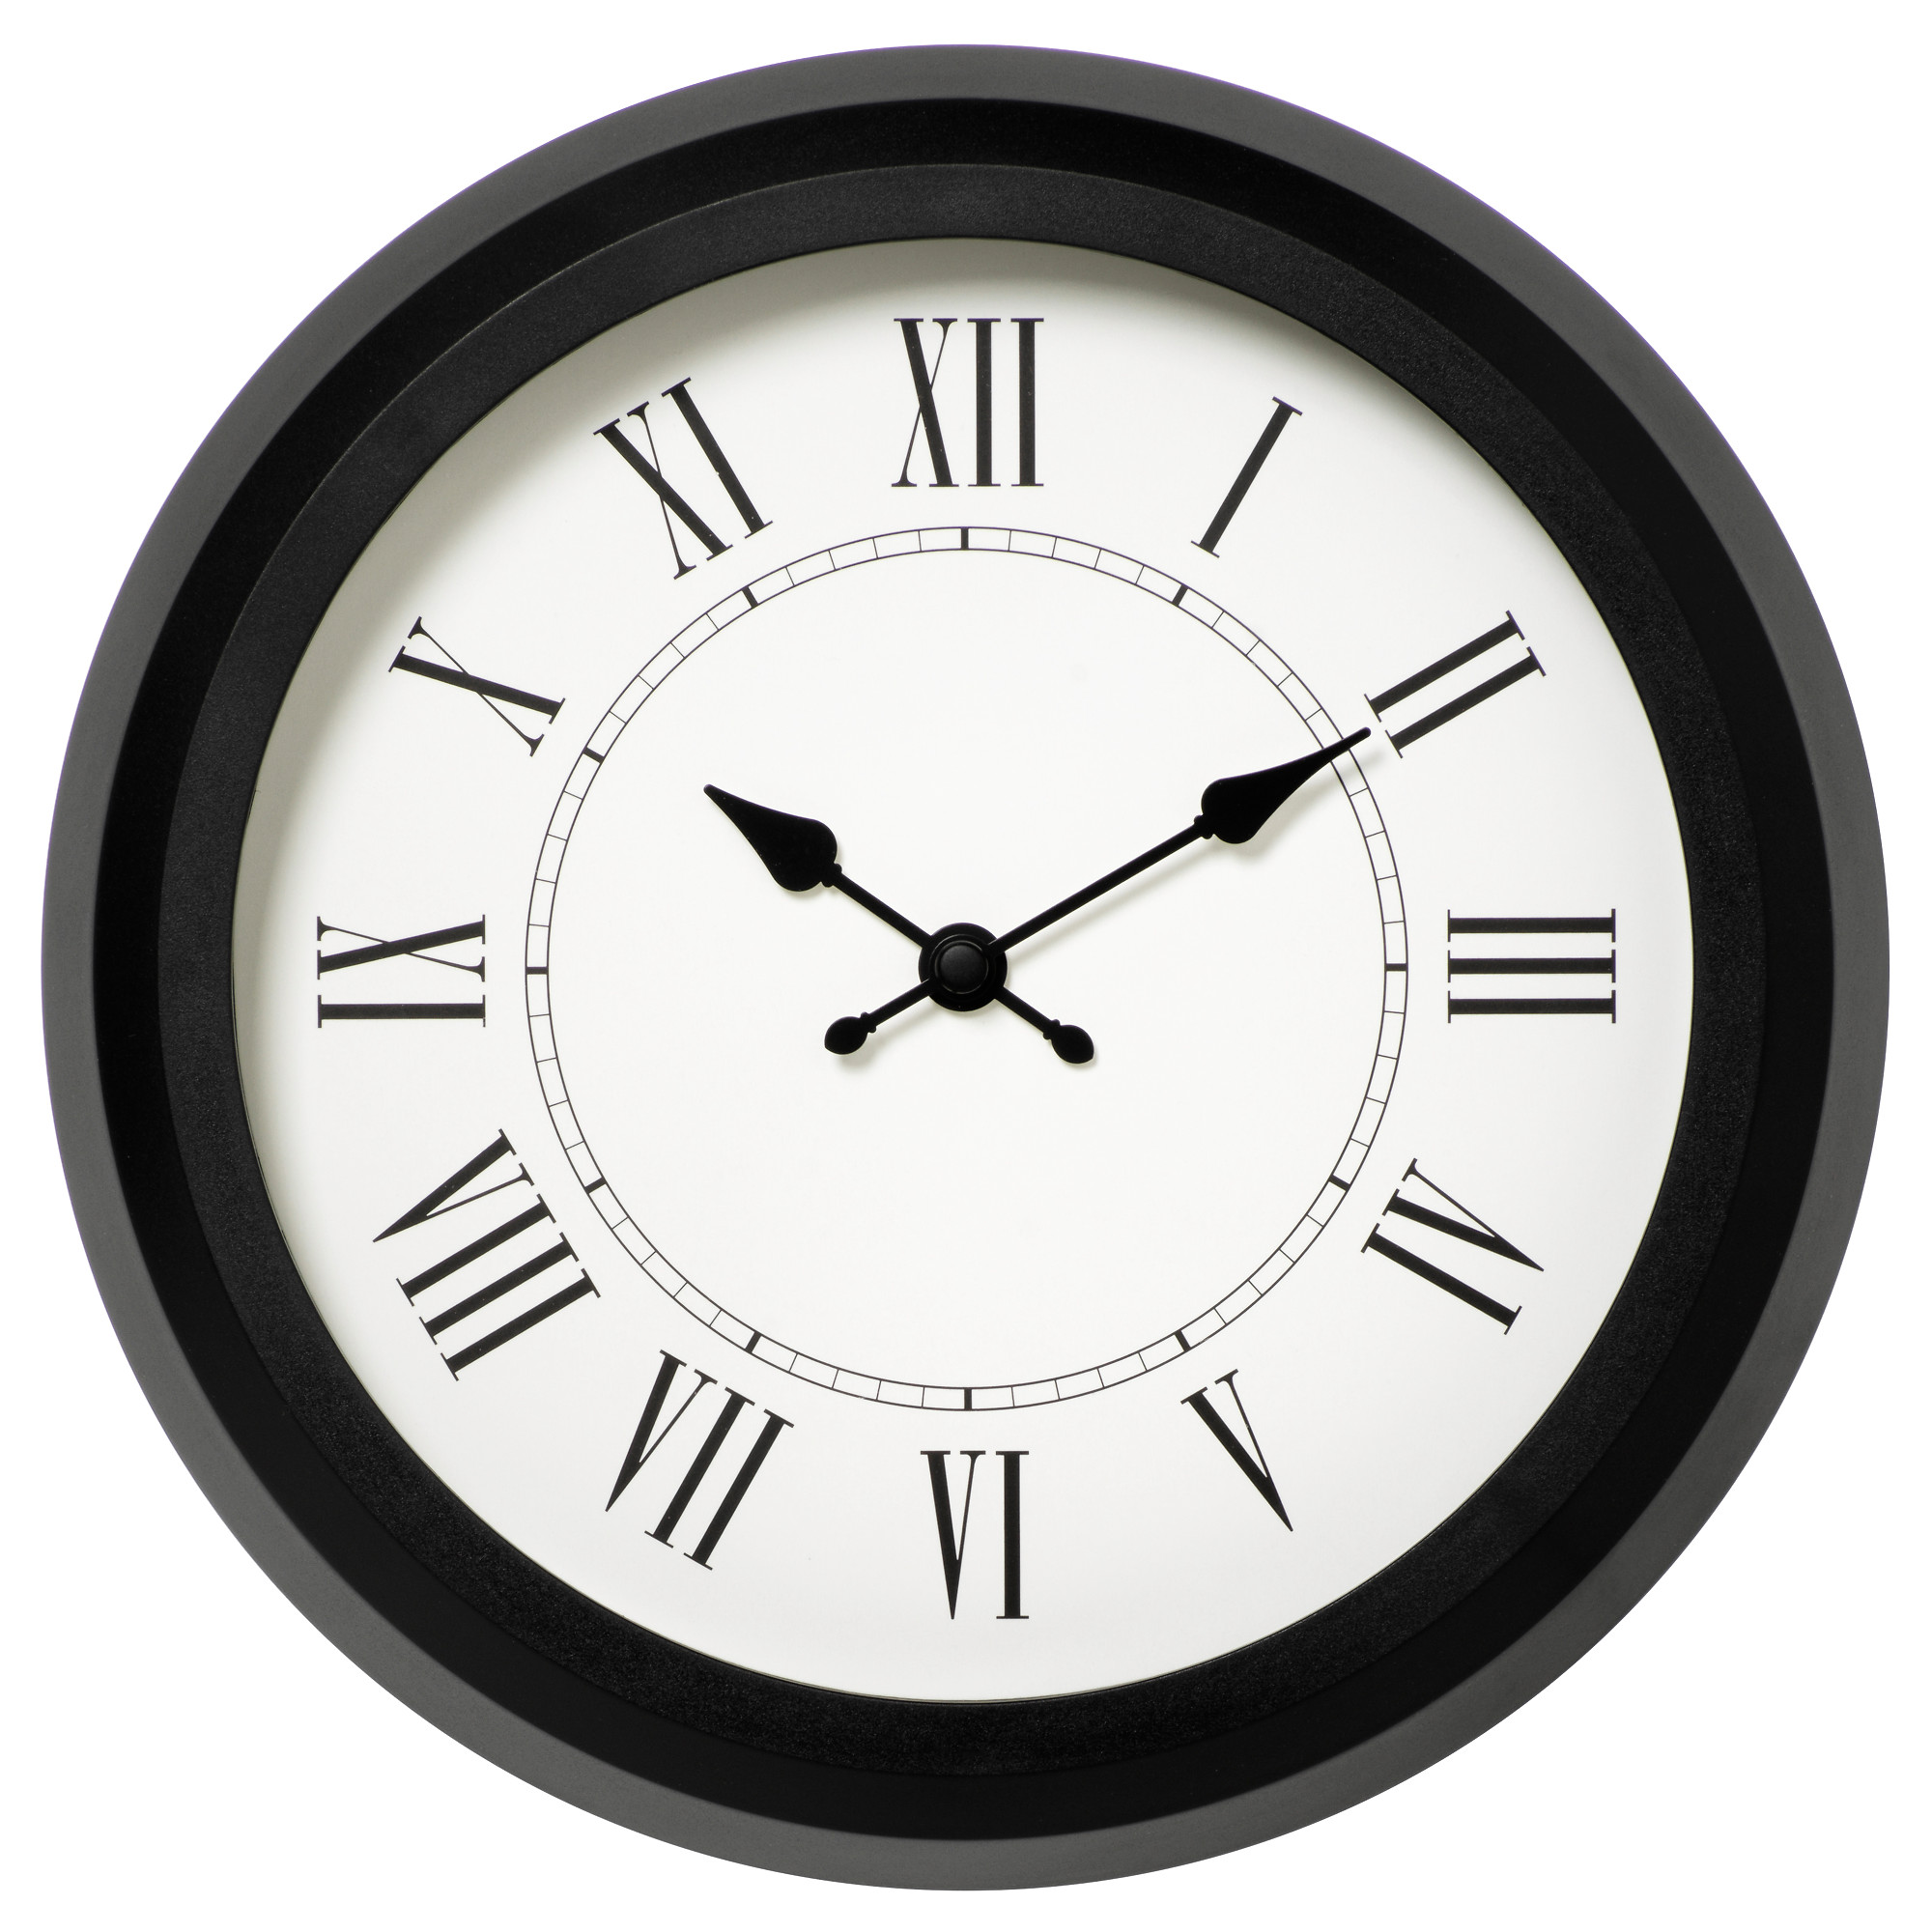 Wall table clocks clocks ikea nuffra wall clock gumiabroncs Gallery